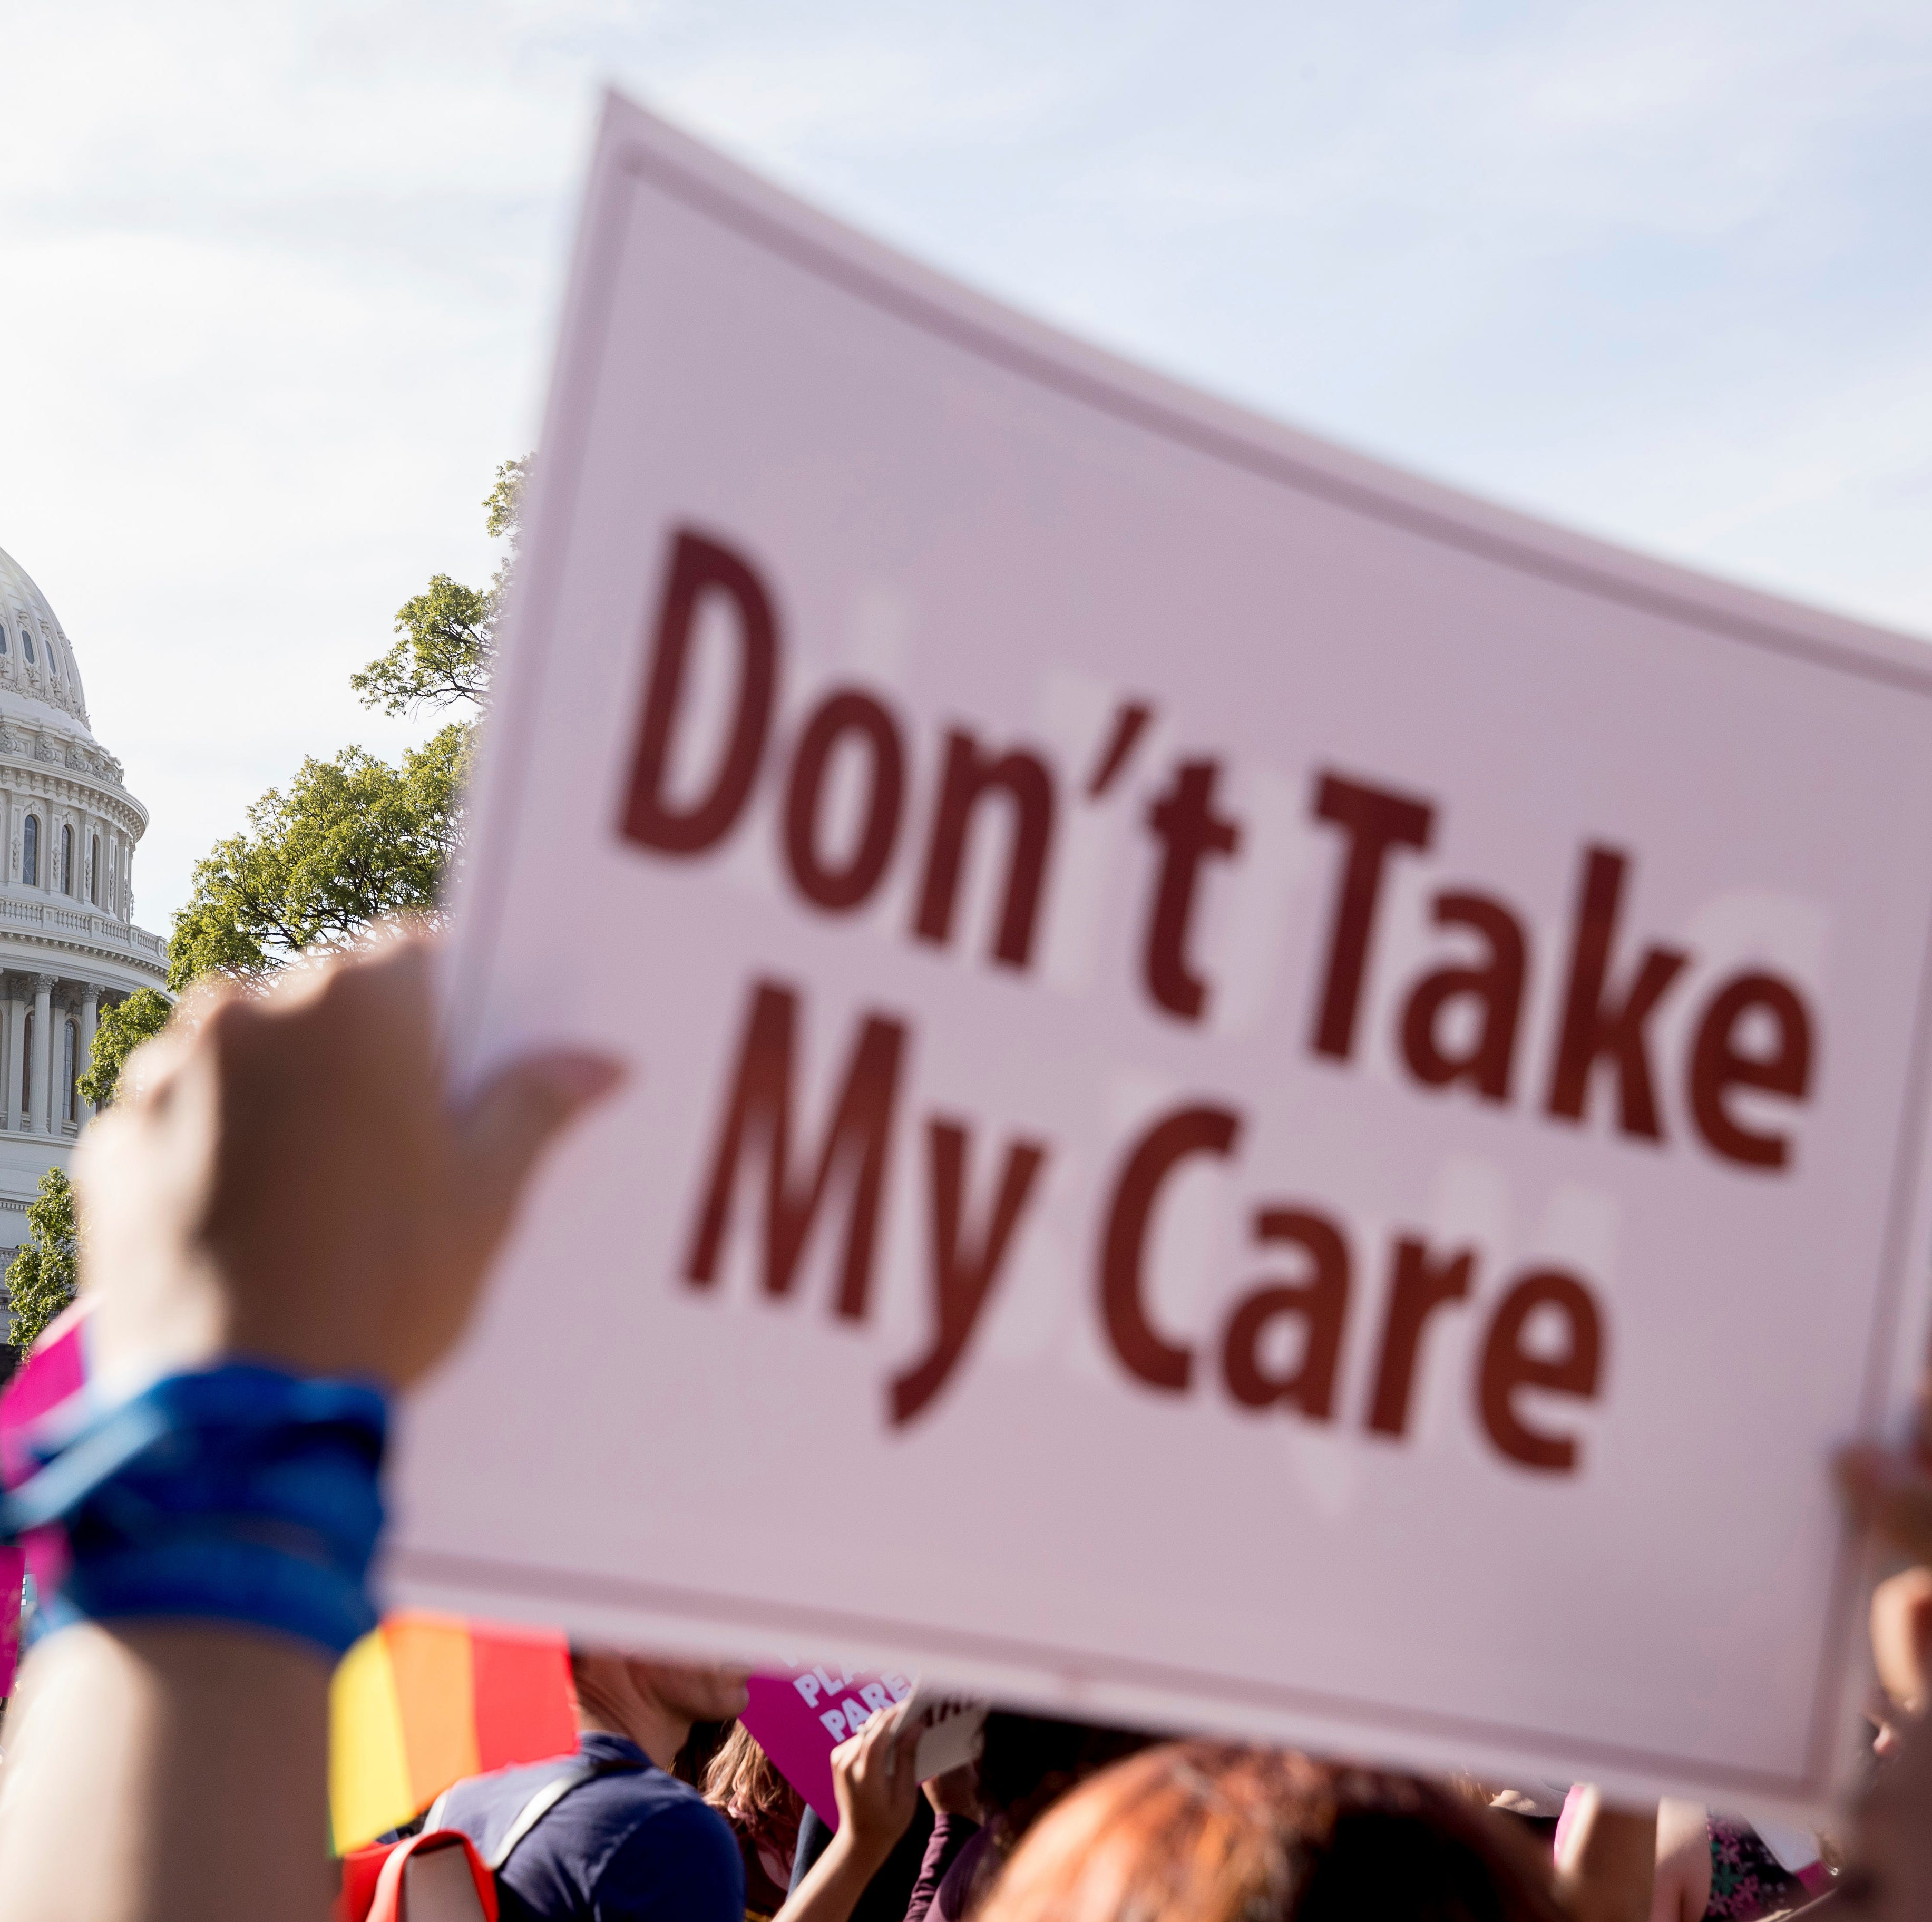 Medicaid expansion is popular. Democrats should build on it in midterms and beyond.